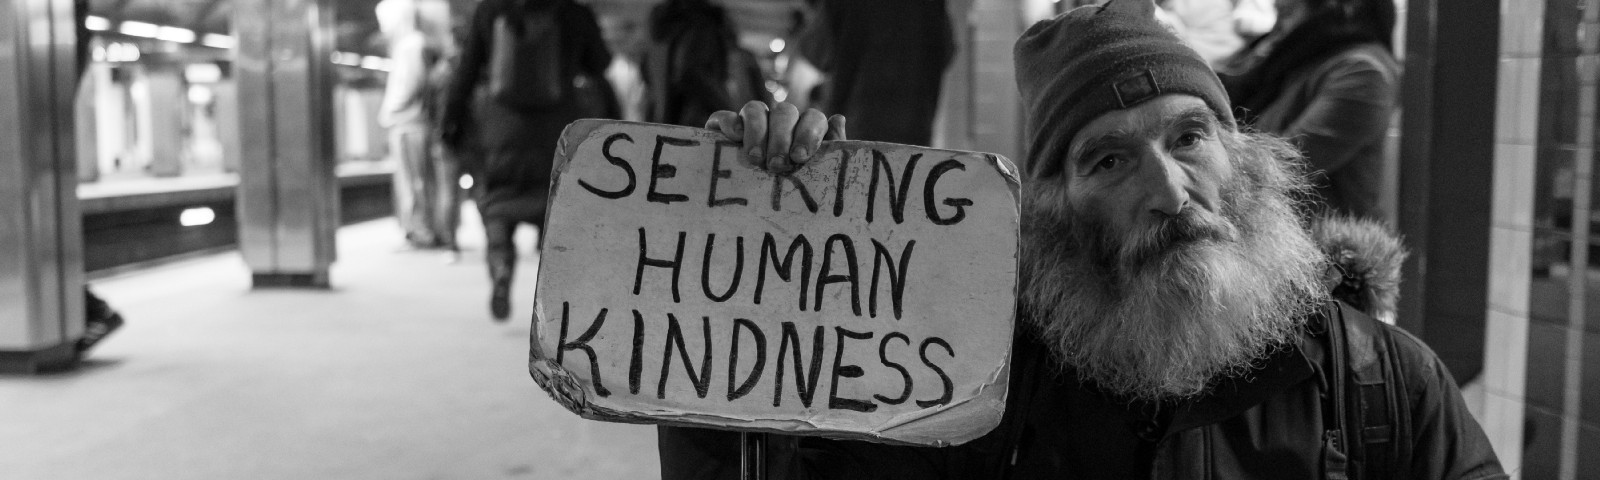 "Homeless man holding up a sign that says ""Seeking human kindness"""